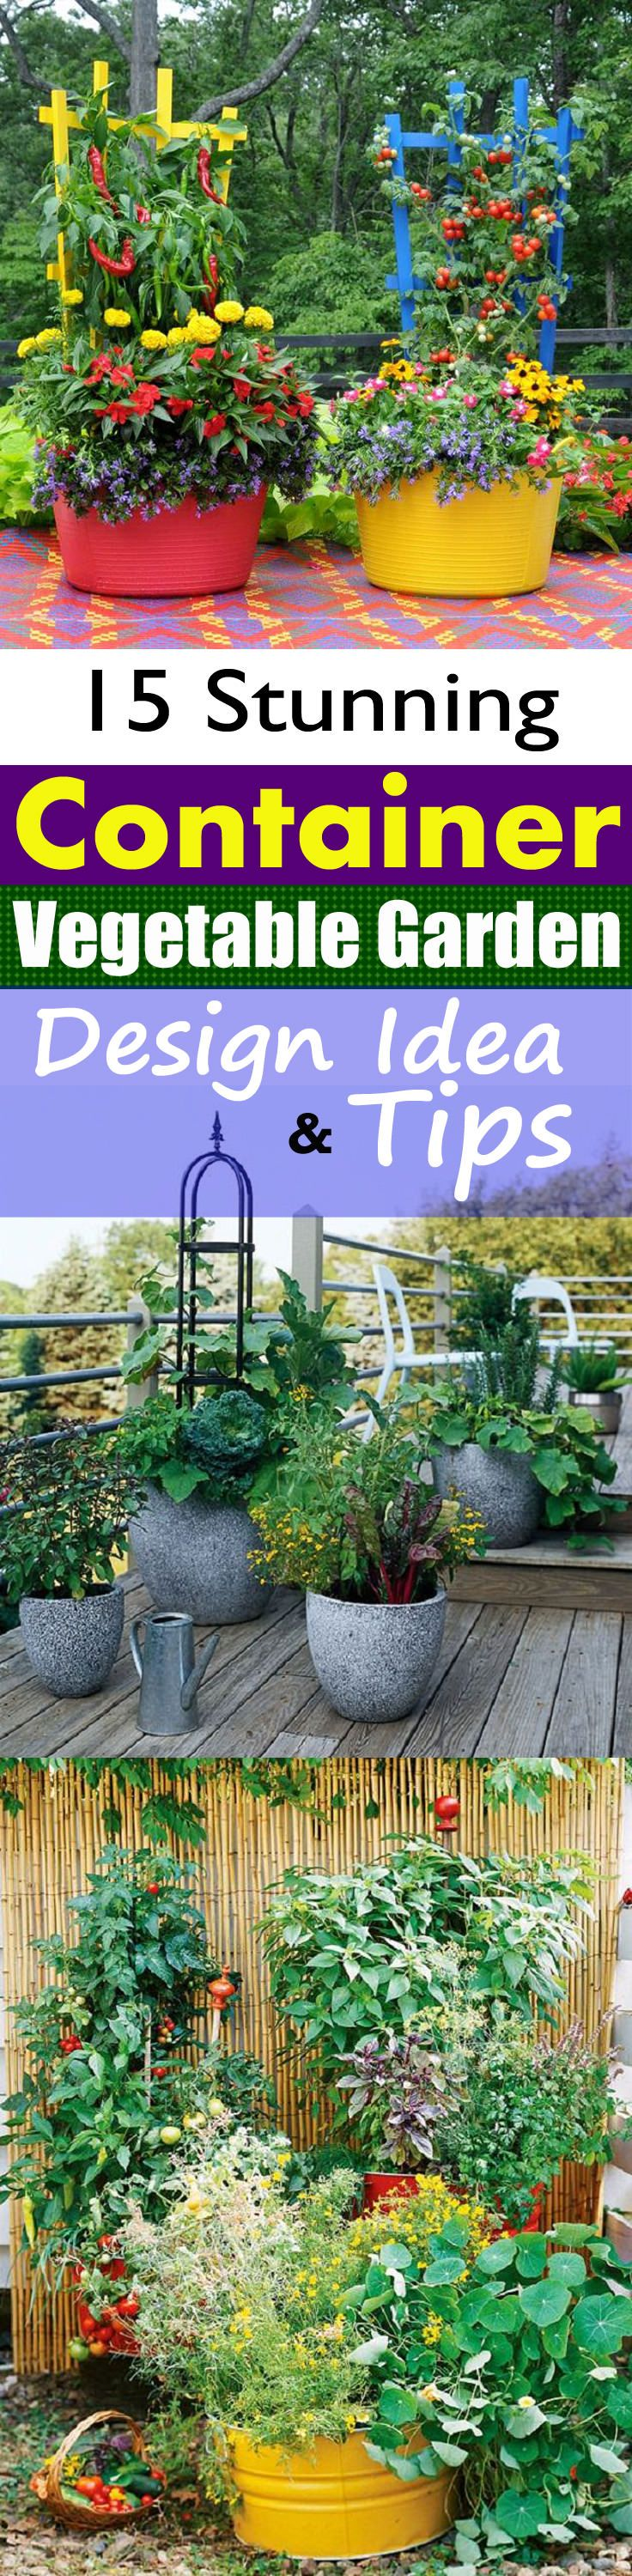 15 Stunning Container Vegetable Garden Design Ideas & Tips ... on organic garden designs, container garage designs, herb garden designs, container vegetable nurseries, flower garden designs, container planting designs, garden planters designs, container veggie garden home, container herb garden, container vegetable gardening, container office designs, container vegetable plants, container gardening designs, indoor garden designs, shade container designs, container plants designs,